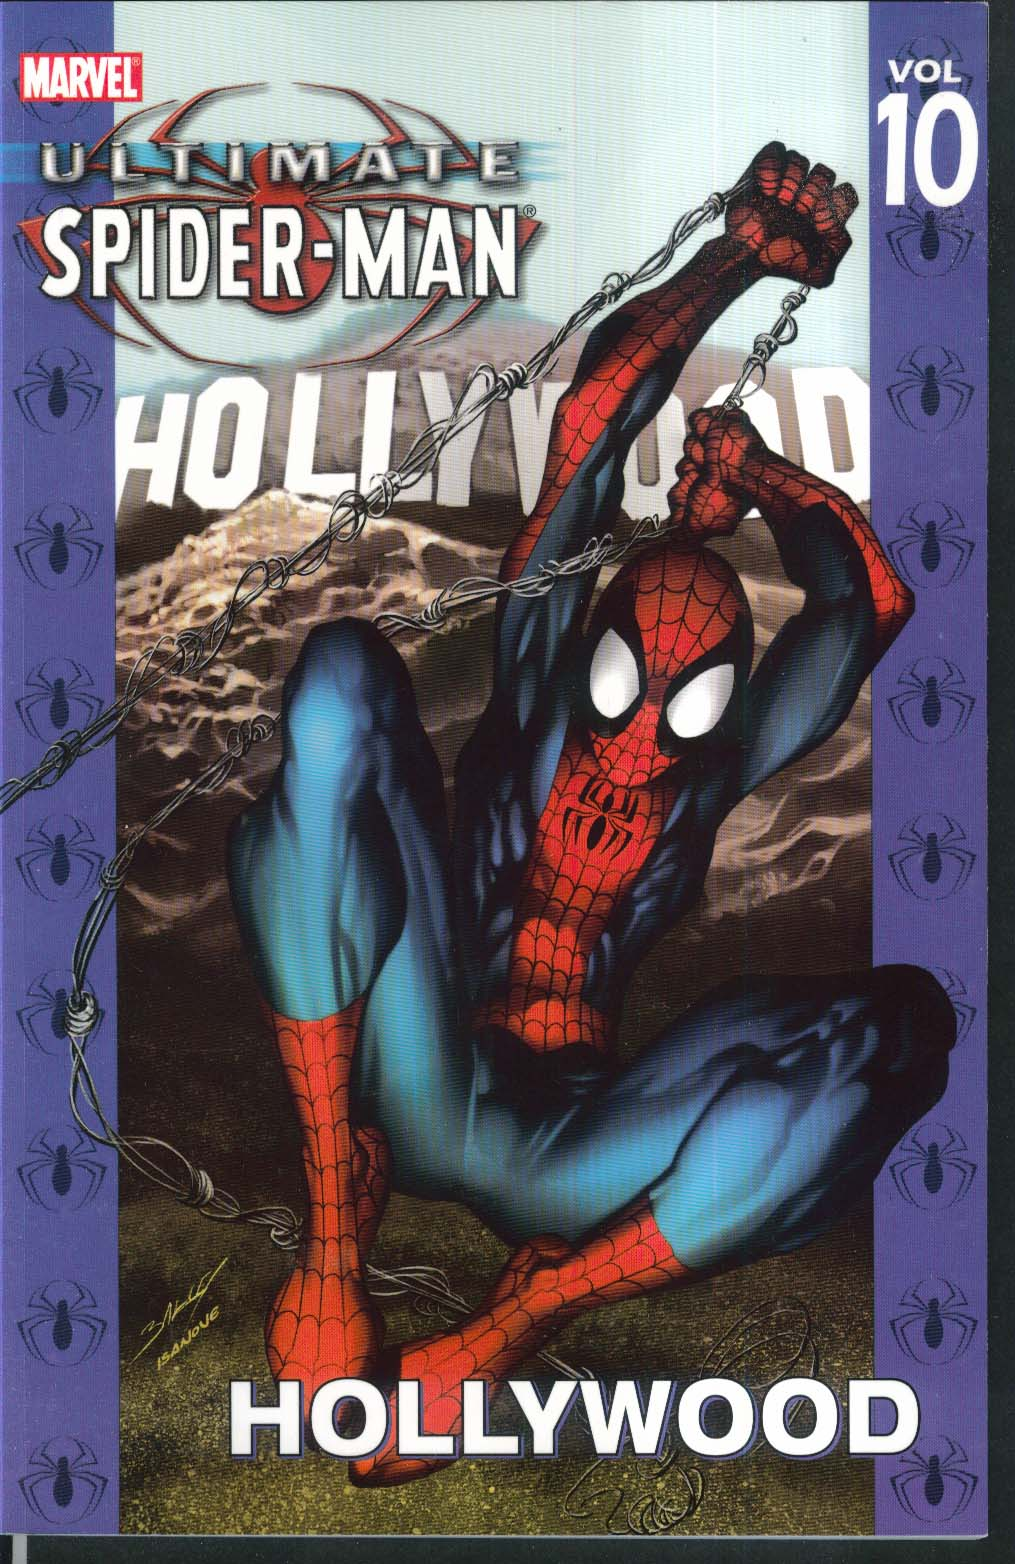 ULTIMATE SPIDER-MAN Vol 10 Hollywood Marvel Graphic Novel 2nd Printing 2004